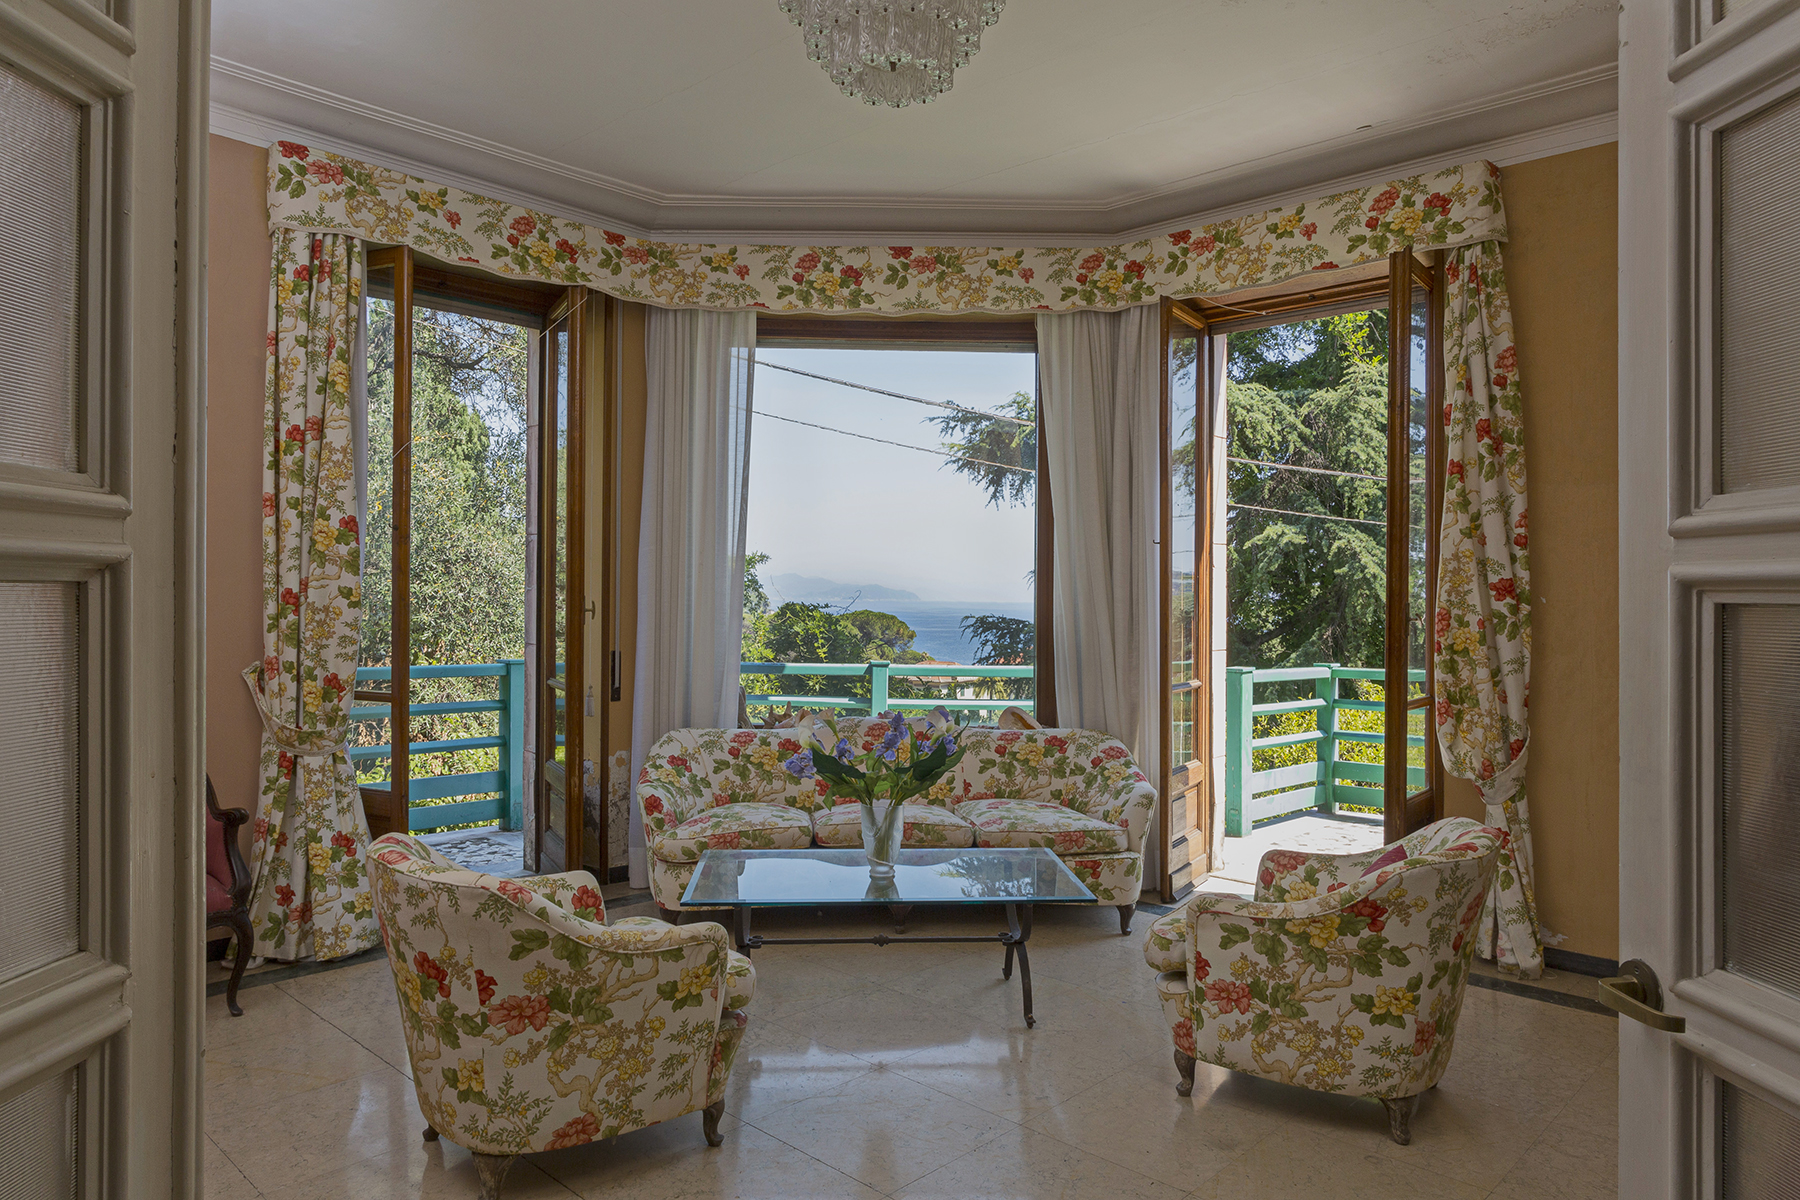 Maison unifamiliale pour l Vente à Exquisite villa with private garden and amazing sea view Santa Margherita Ligure, Genoa Italie